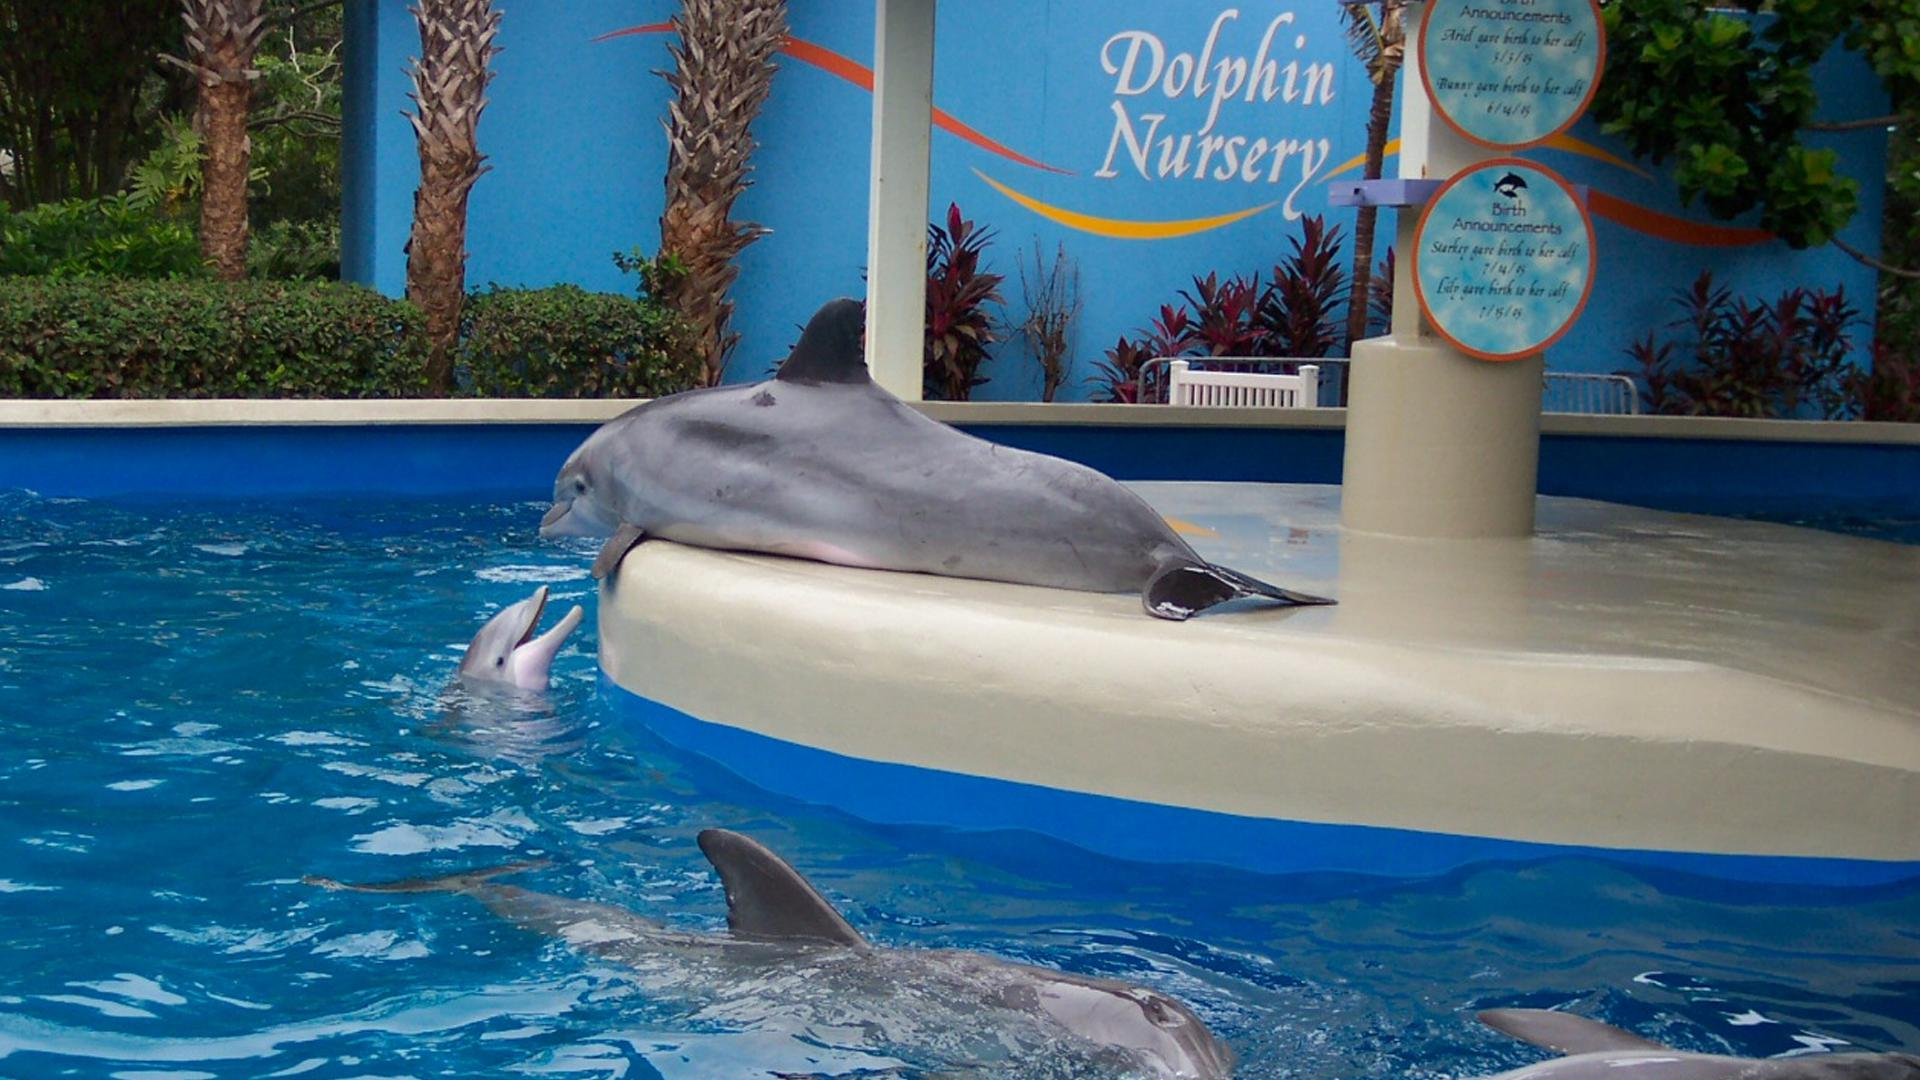 Dolphin Nursery Orlando Tickets Hotels Packages